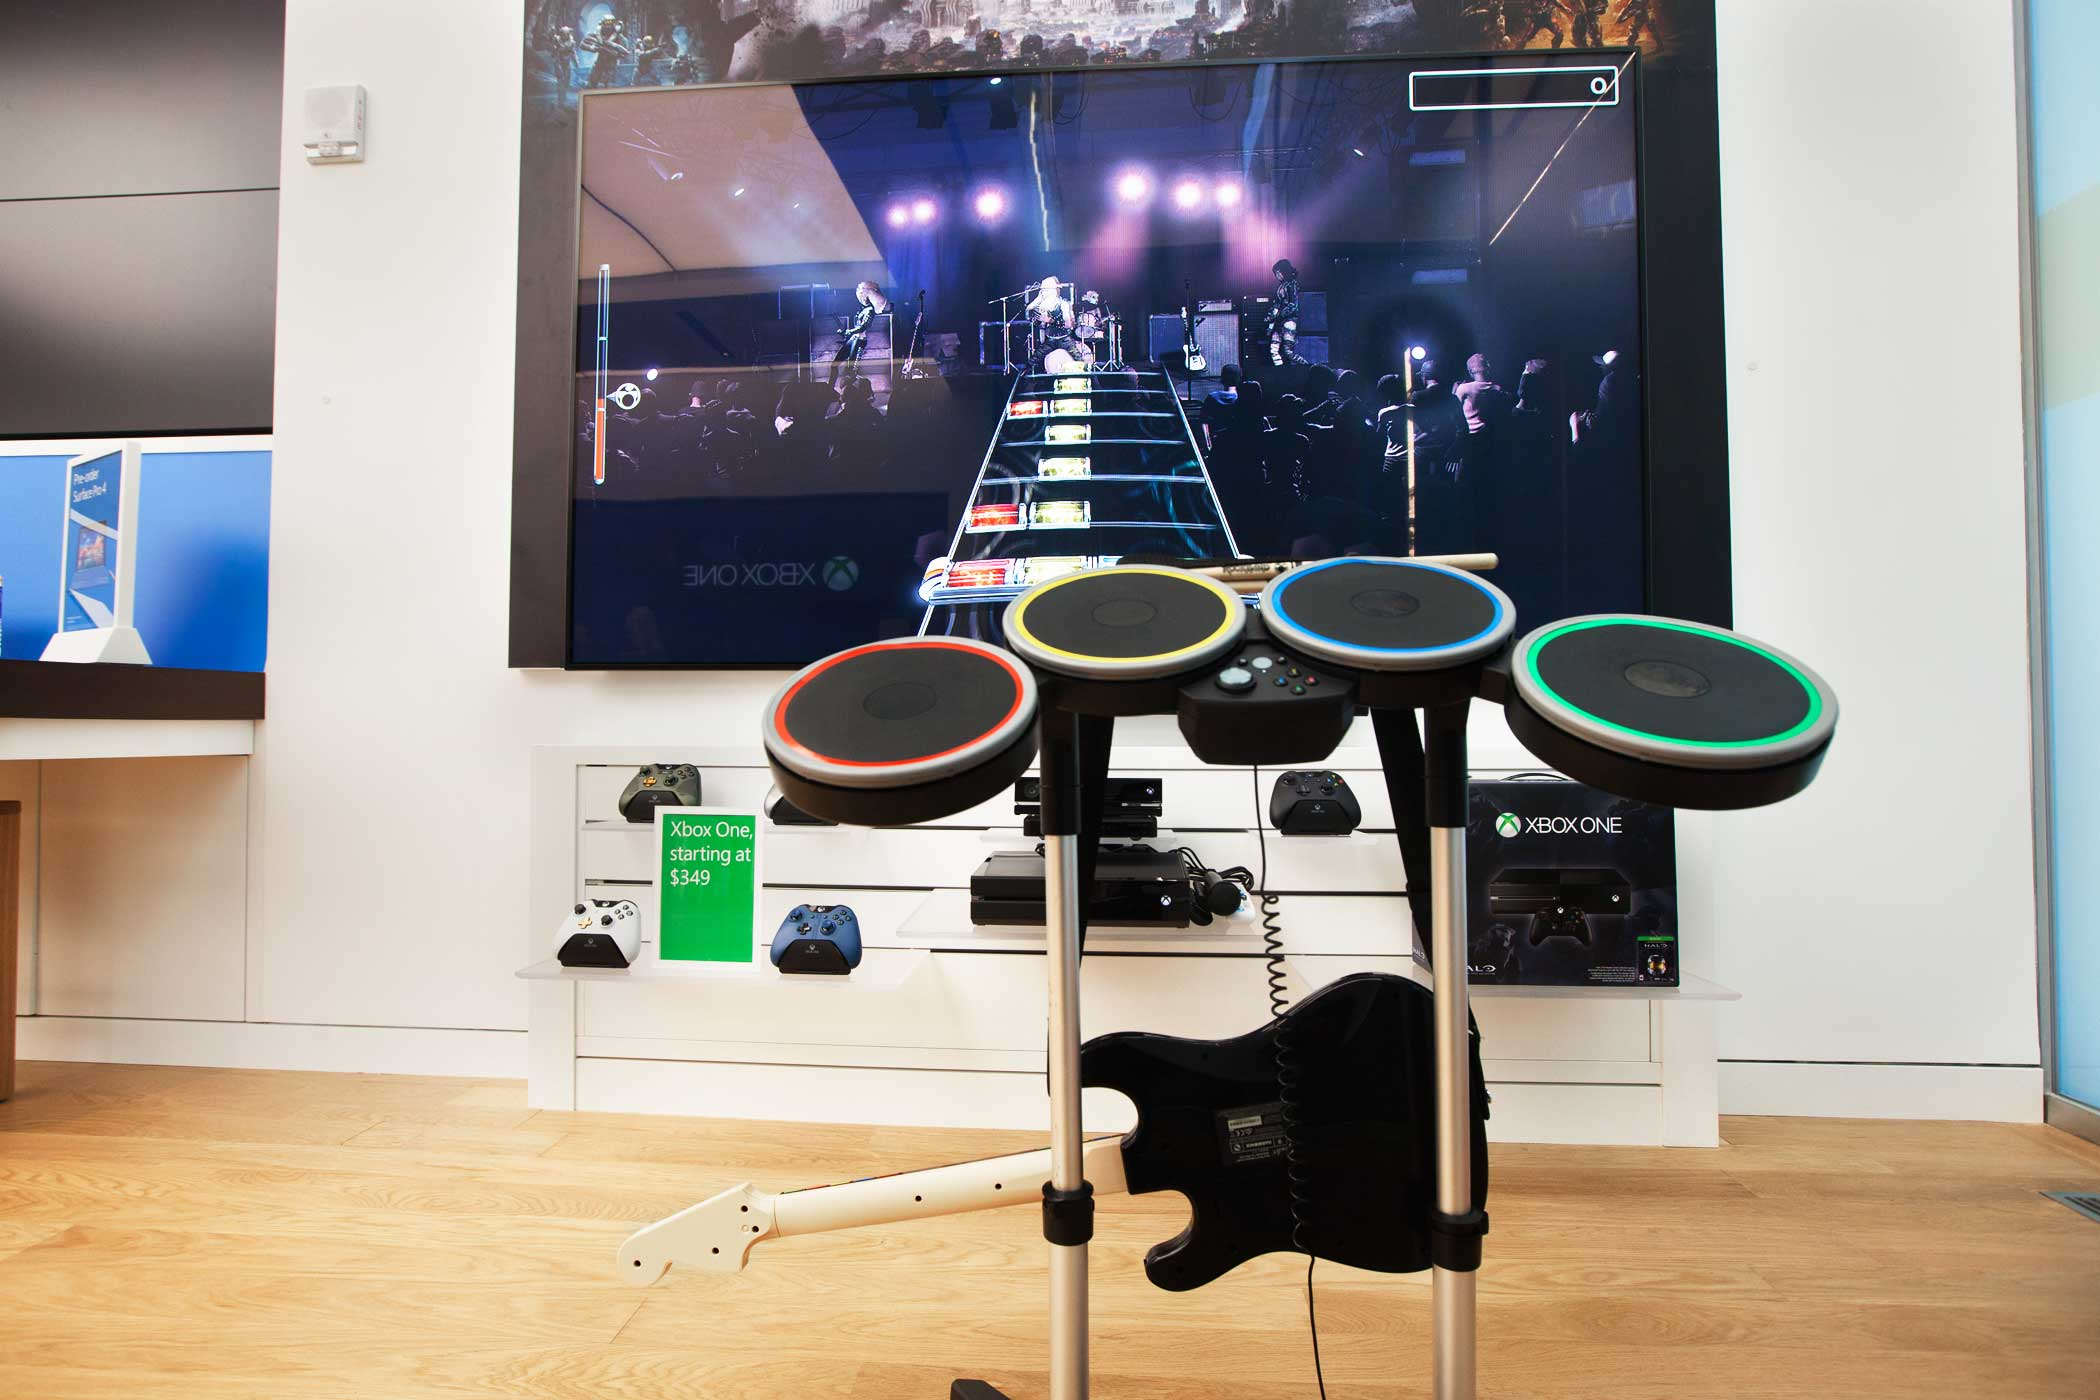 Guitar Hero is setup for all to play.